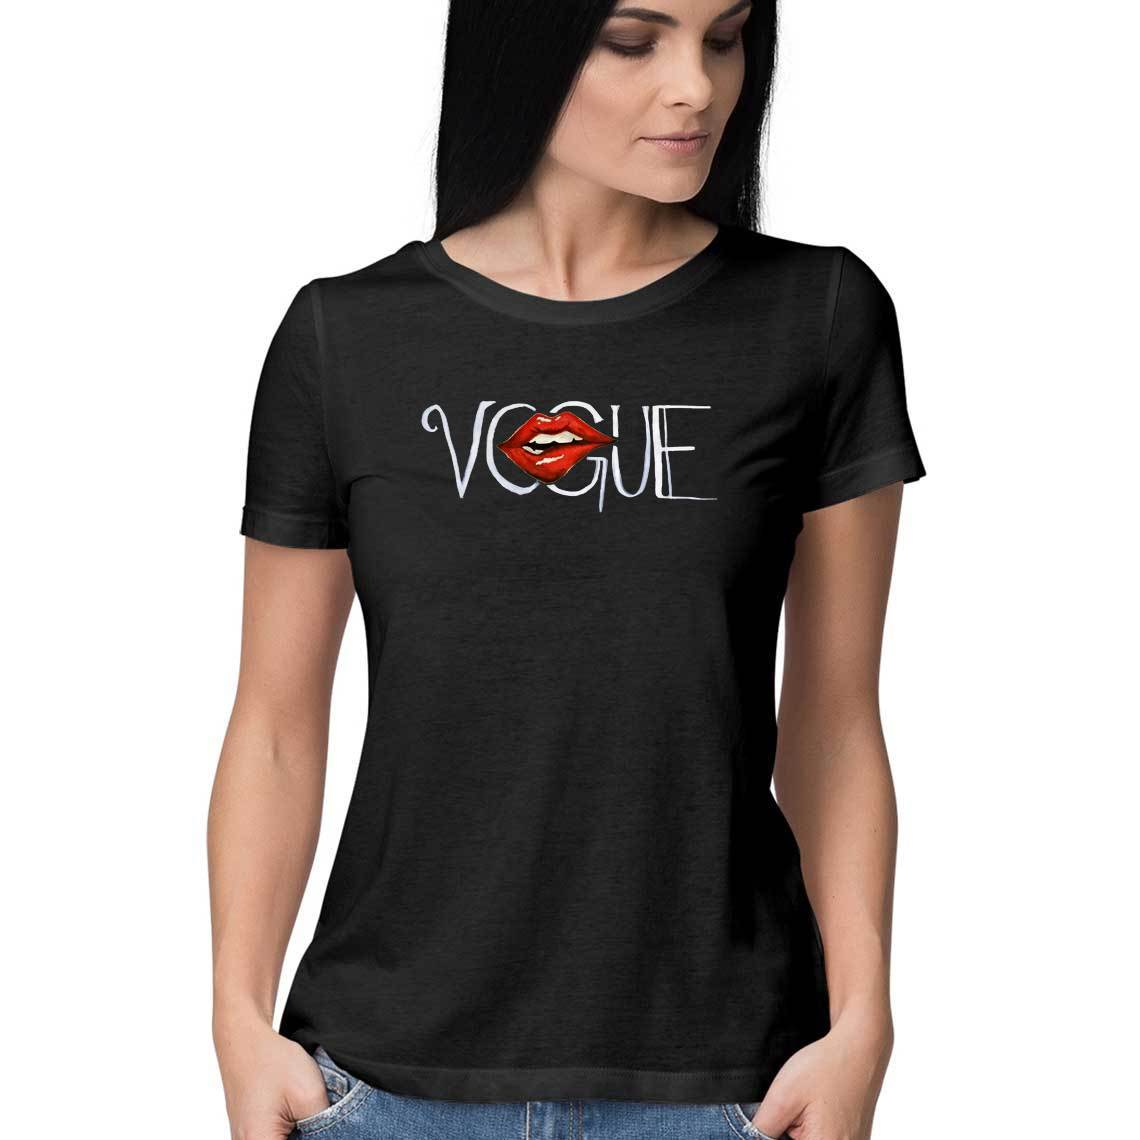 Vogue Women's Black T Shirt-Nikhita Nair - 21 AD